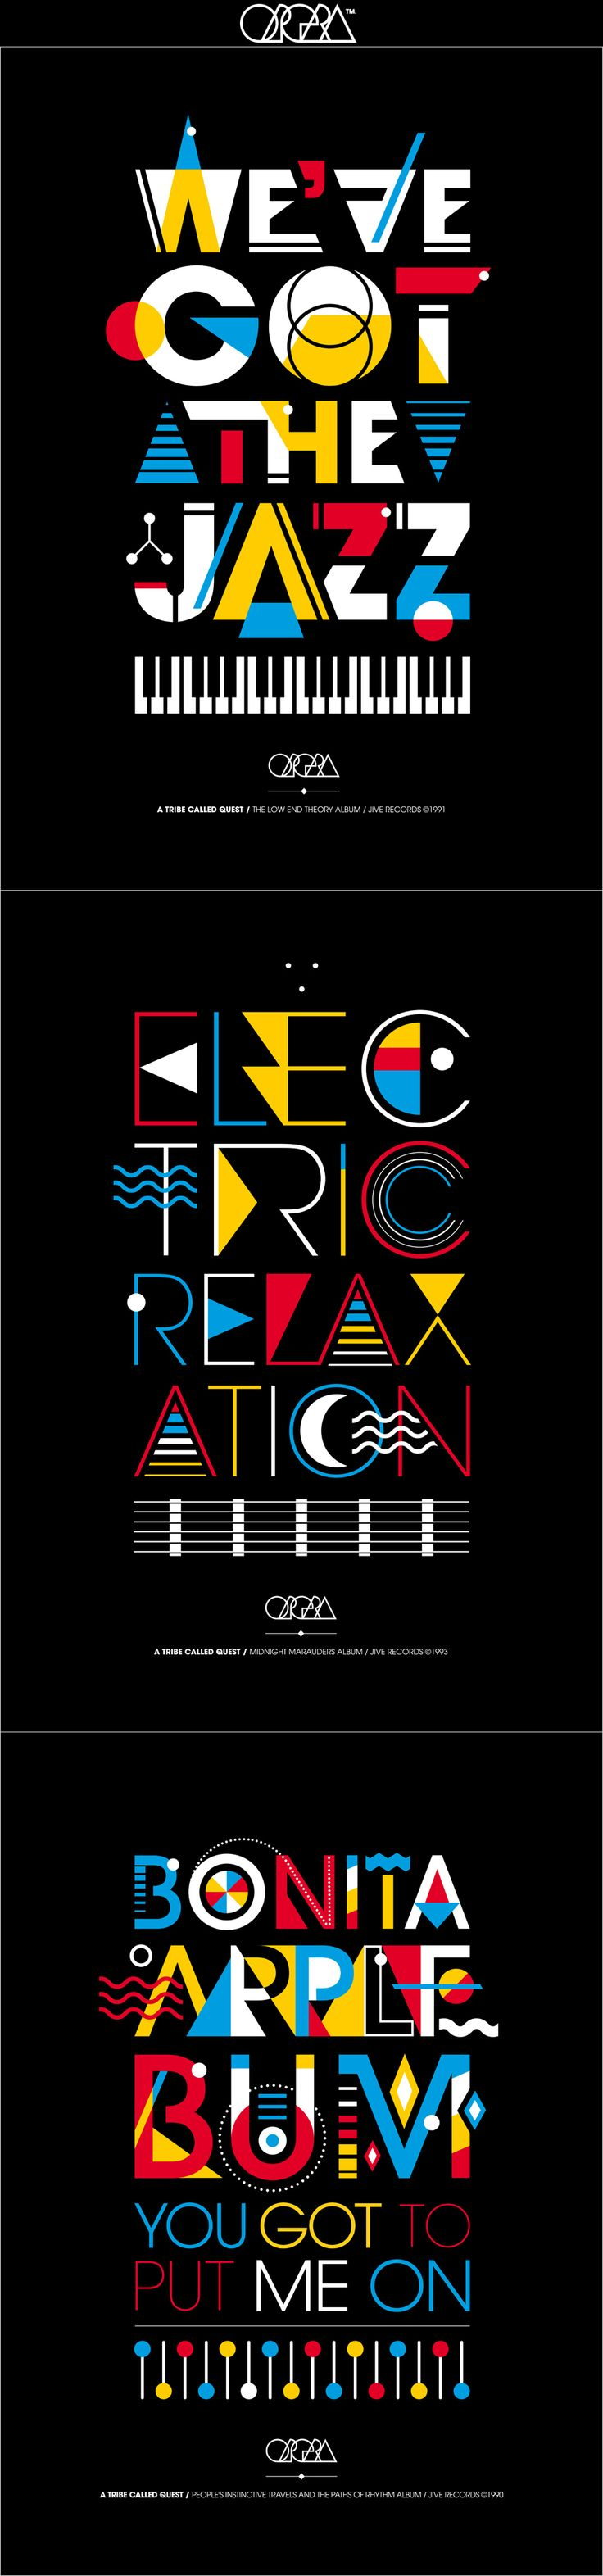 "A TRIBE CALLED QUEST TRIBUTE • Réalisation d'une série de 3 affiches sur des chansons phares du groupe ""A Tribe Called Quest"" [ A series of three posters on flagship songs from the group ""A Tribe Called Quest"" ] • WE GOT THE JAZZ • ELECTRIC RELAXATION • BONITA APPLEBUM • By Stéphane Vignal • Graphic Designer • Art Director • Graffiti Player • Paris France • OPERA GRAPHIKS • http://www.operagraphiks.com/ • #GraphicDesign #Typography #Poster #ATribeCalledQuest"